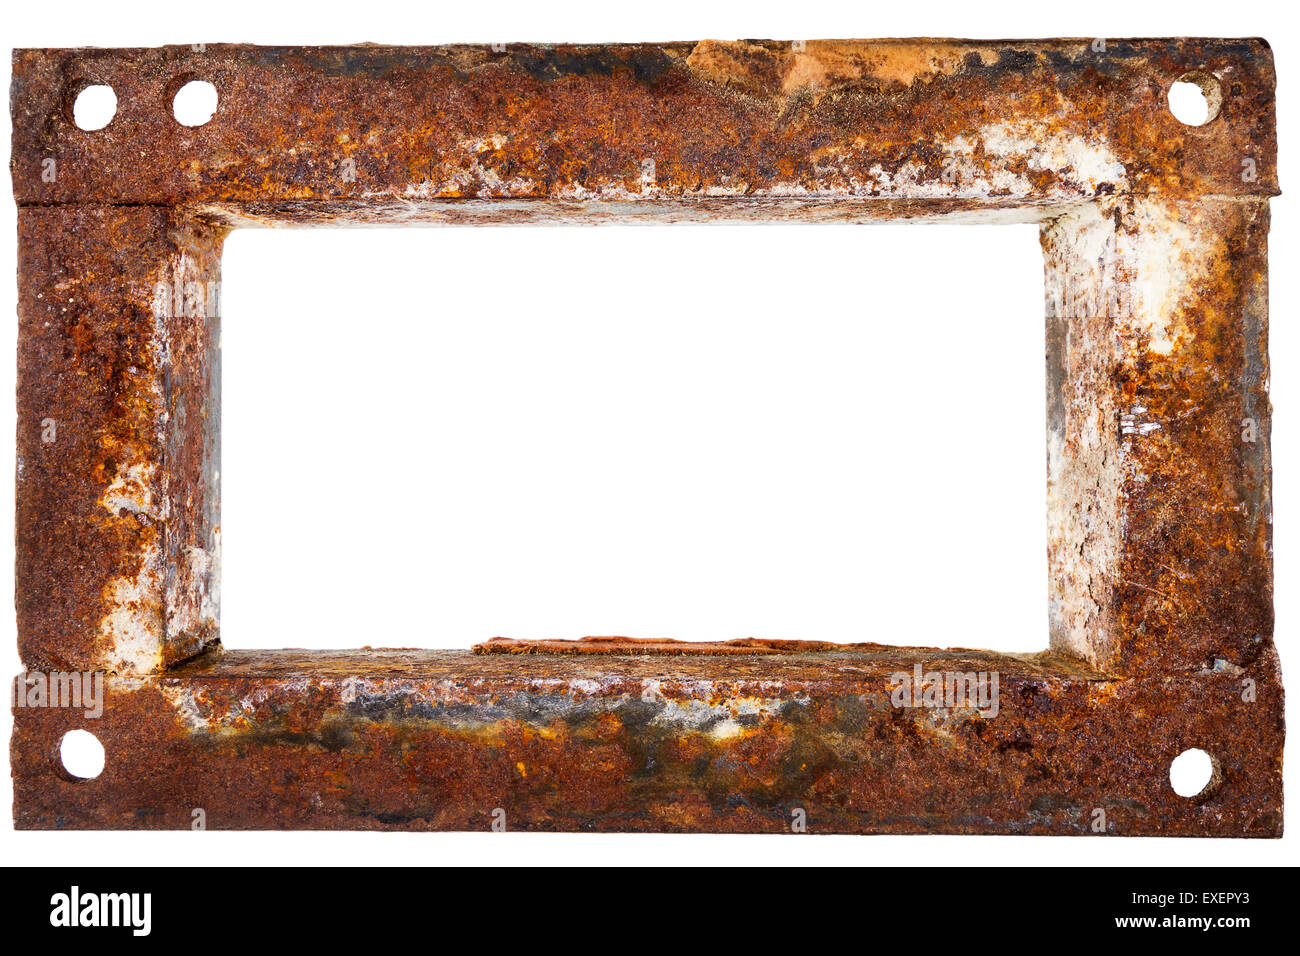 Old rusty metal frame isolated on white background Stock Photo ...